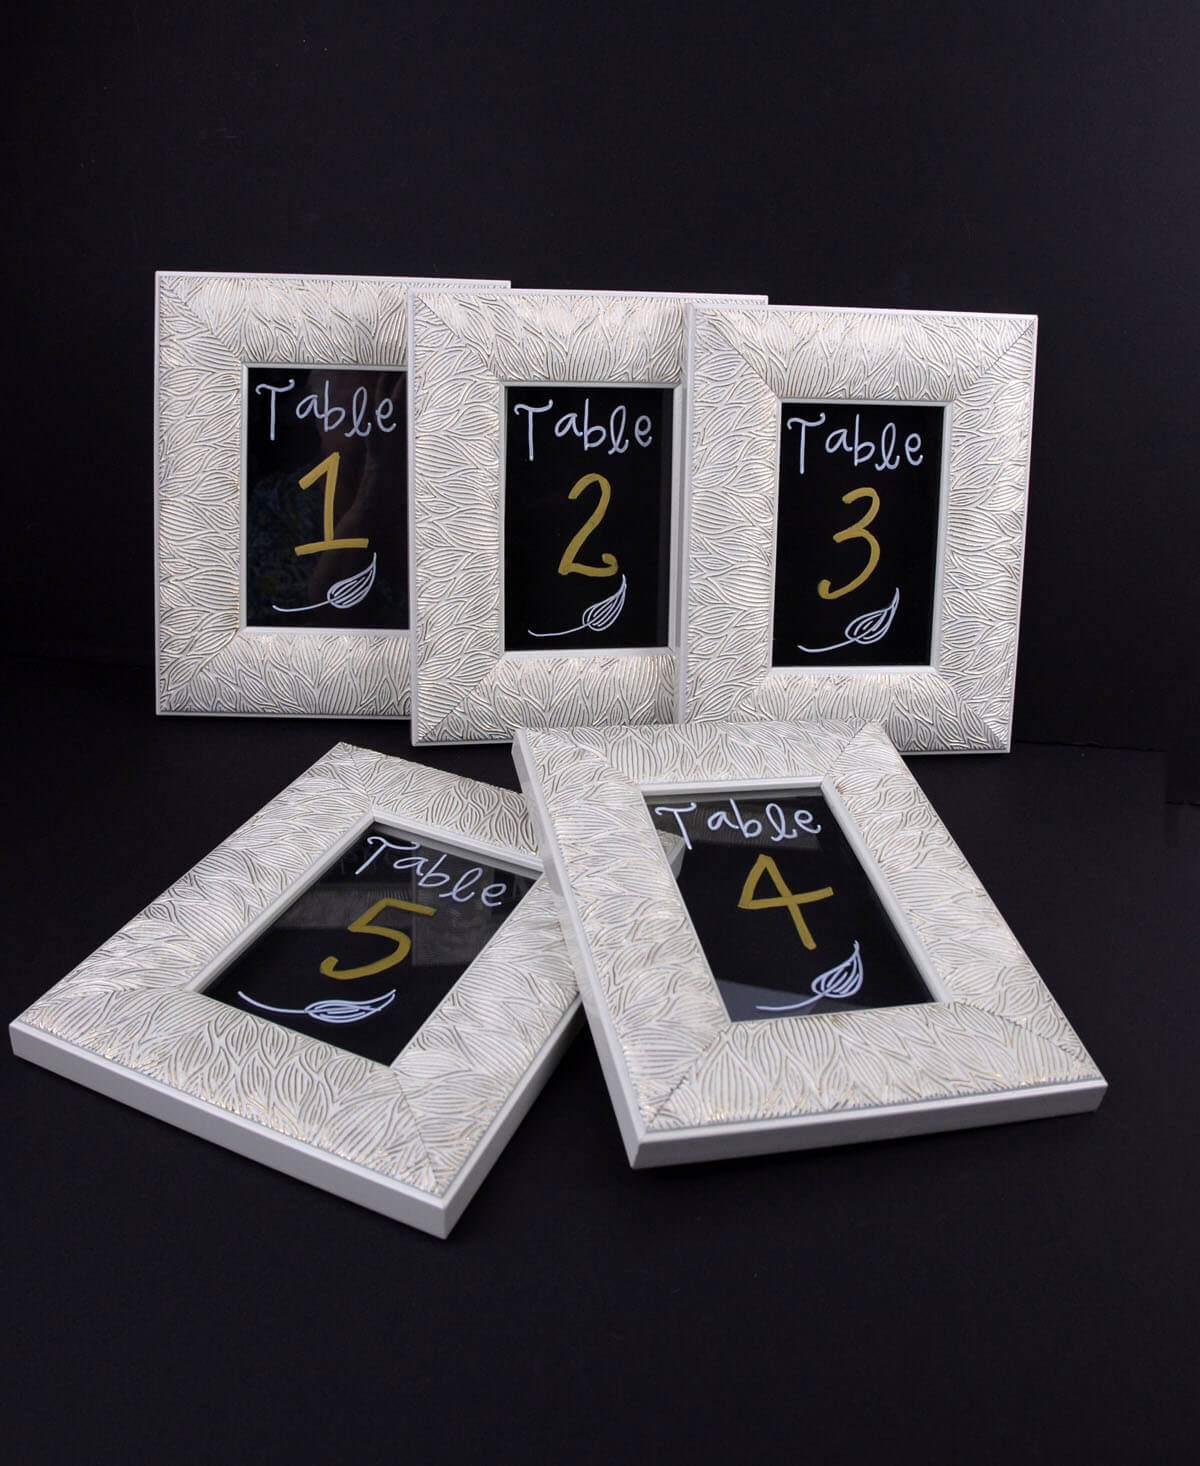 5 Framed Glass For Table Numbers 4x6